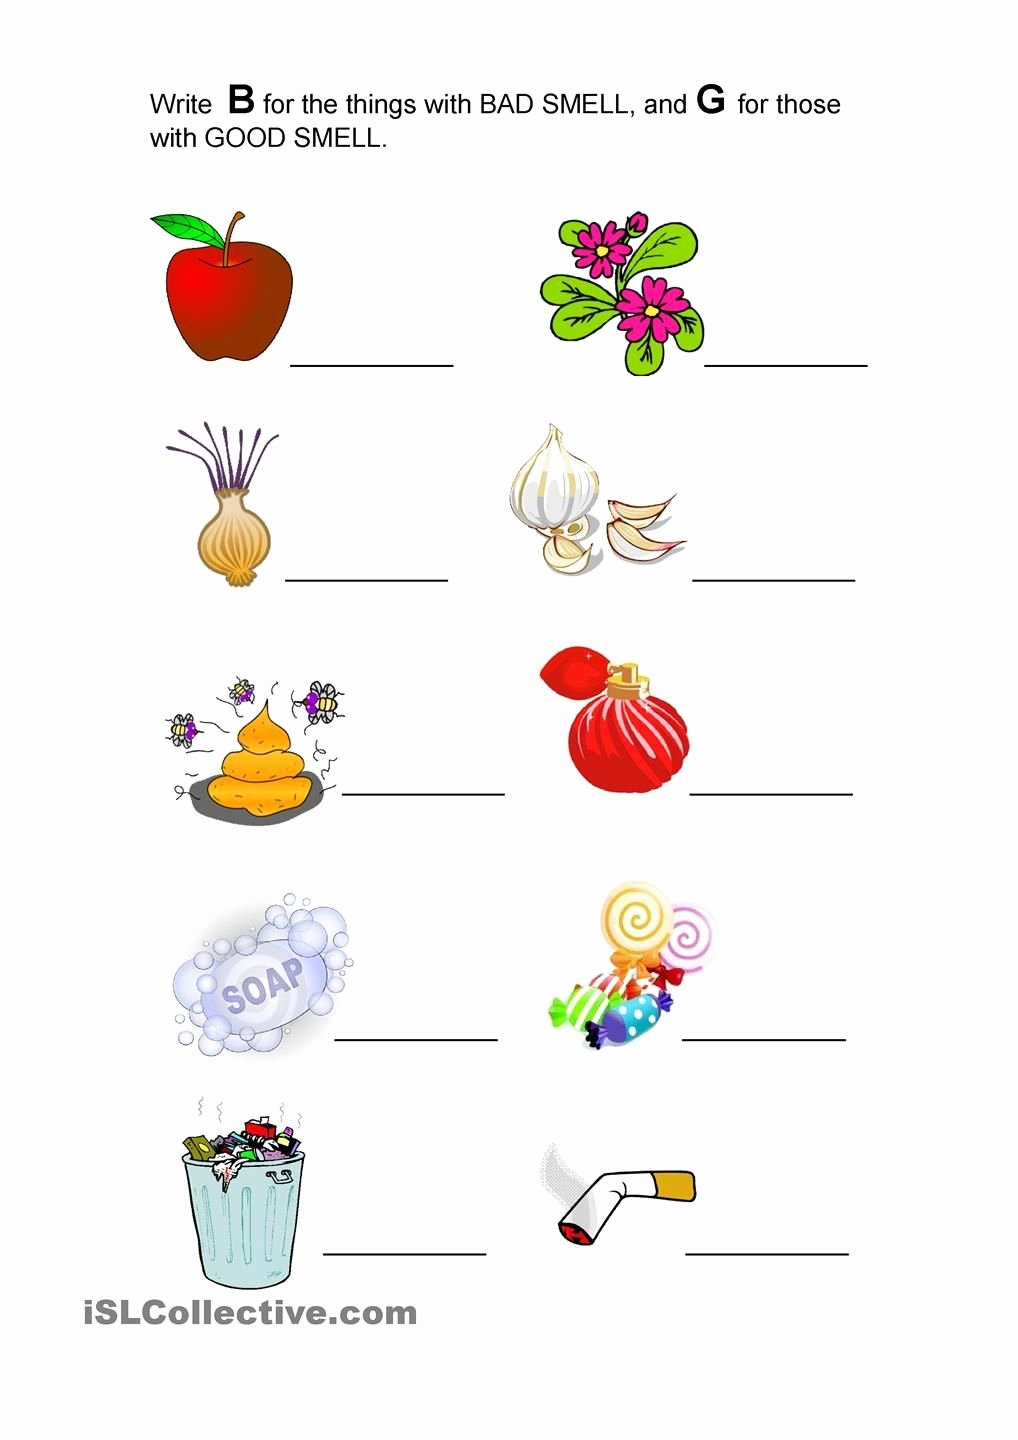 Sense Of Smell Worksheets for Preschoolers Free Good Smell and Bad Smell